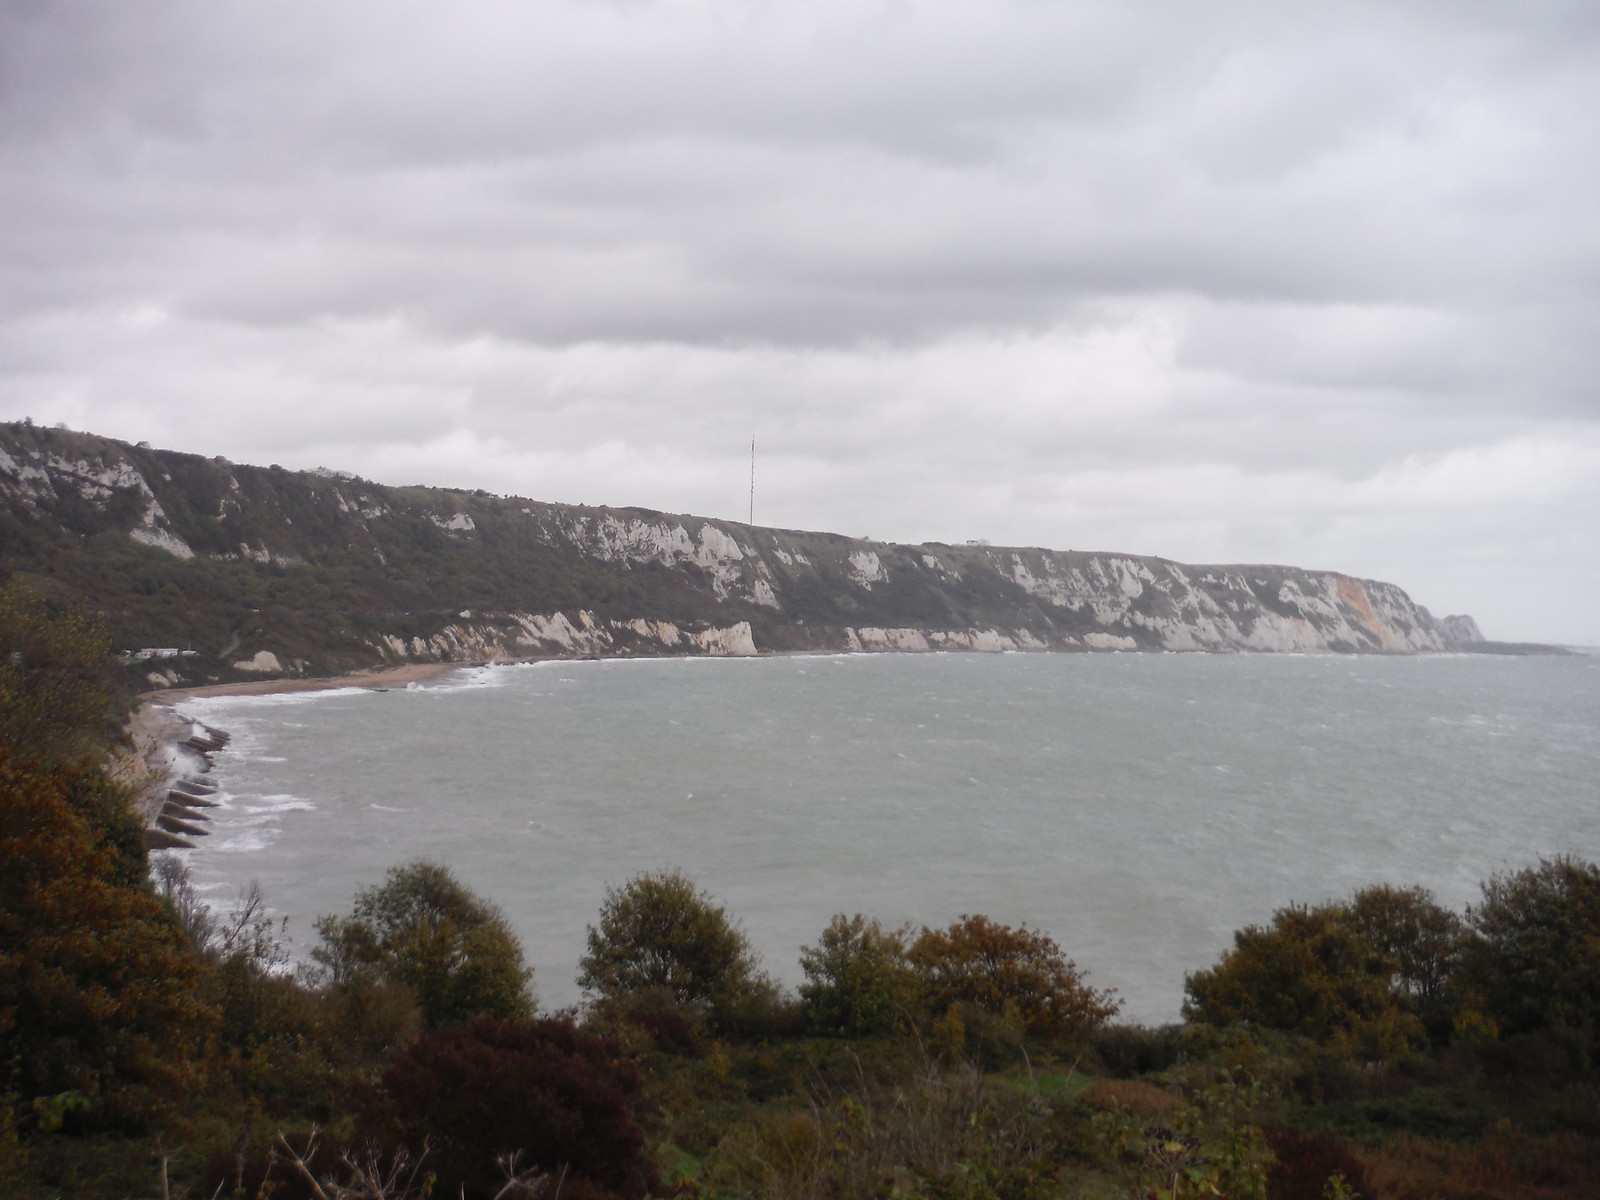 White Cliffs of... SWC Walk 93 - North Downs Way: Sandling to Folkestone or Dover